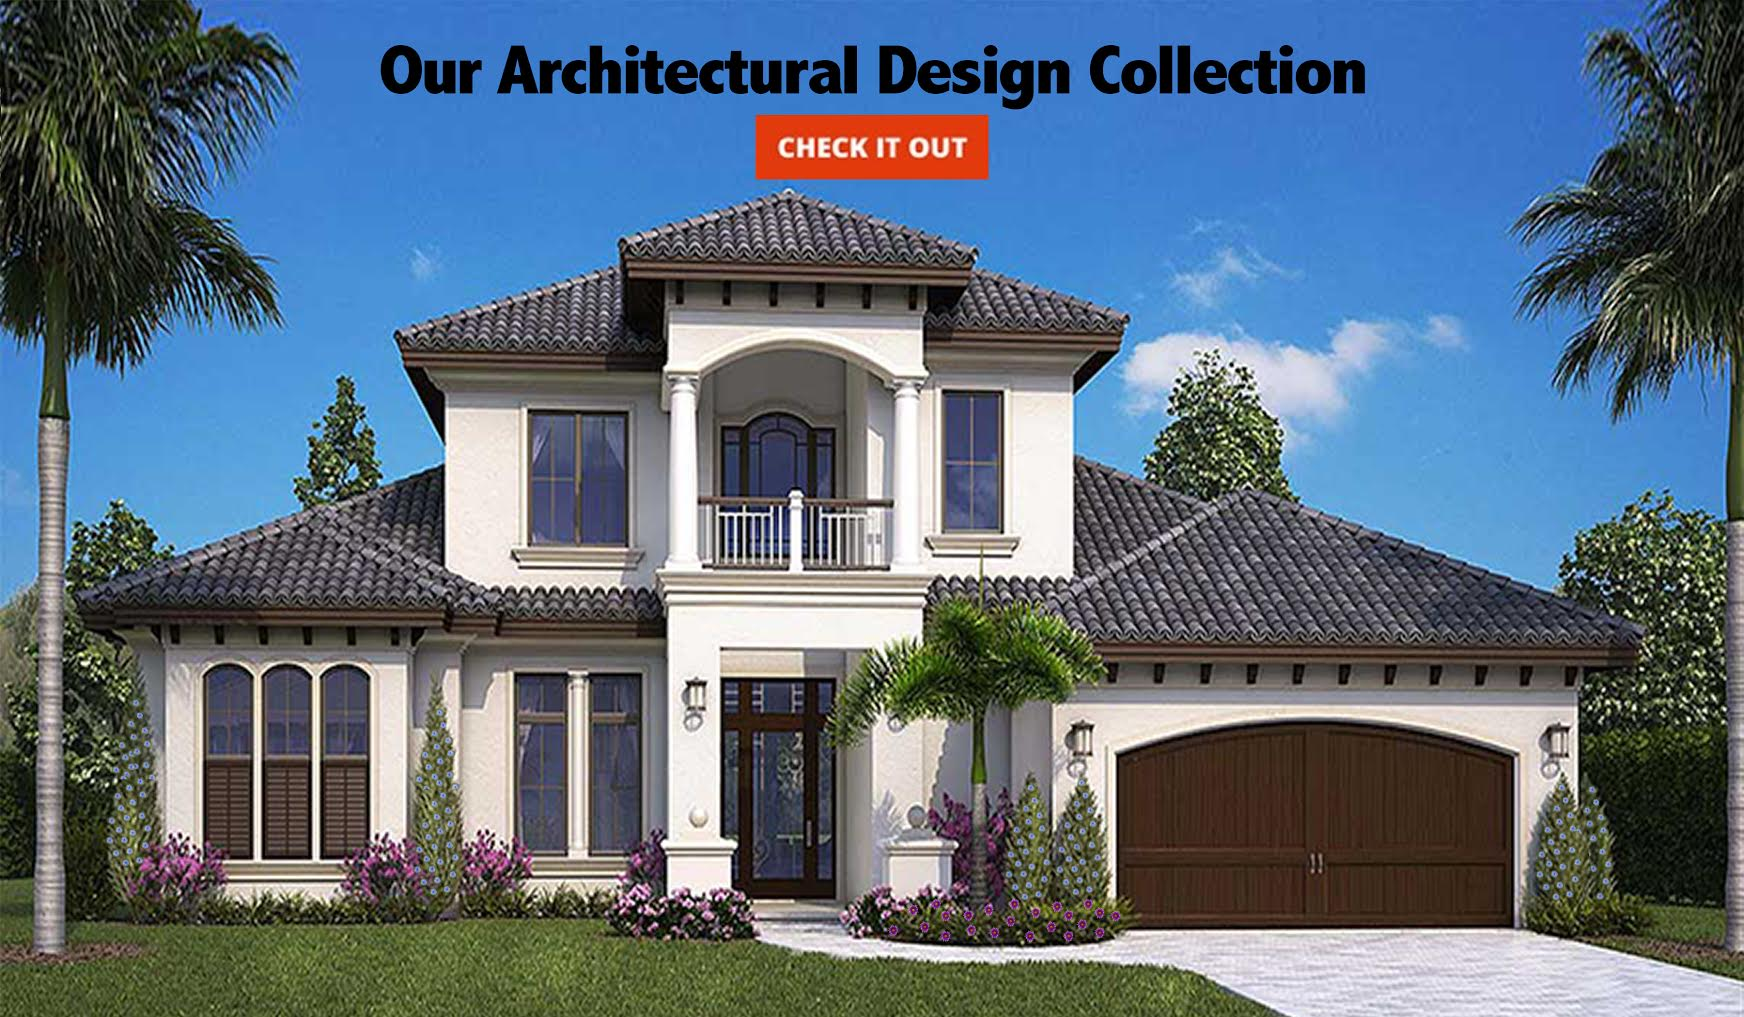 Architectural Design Collection